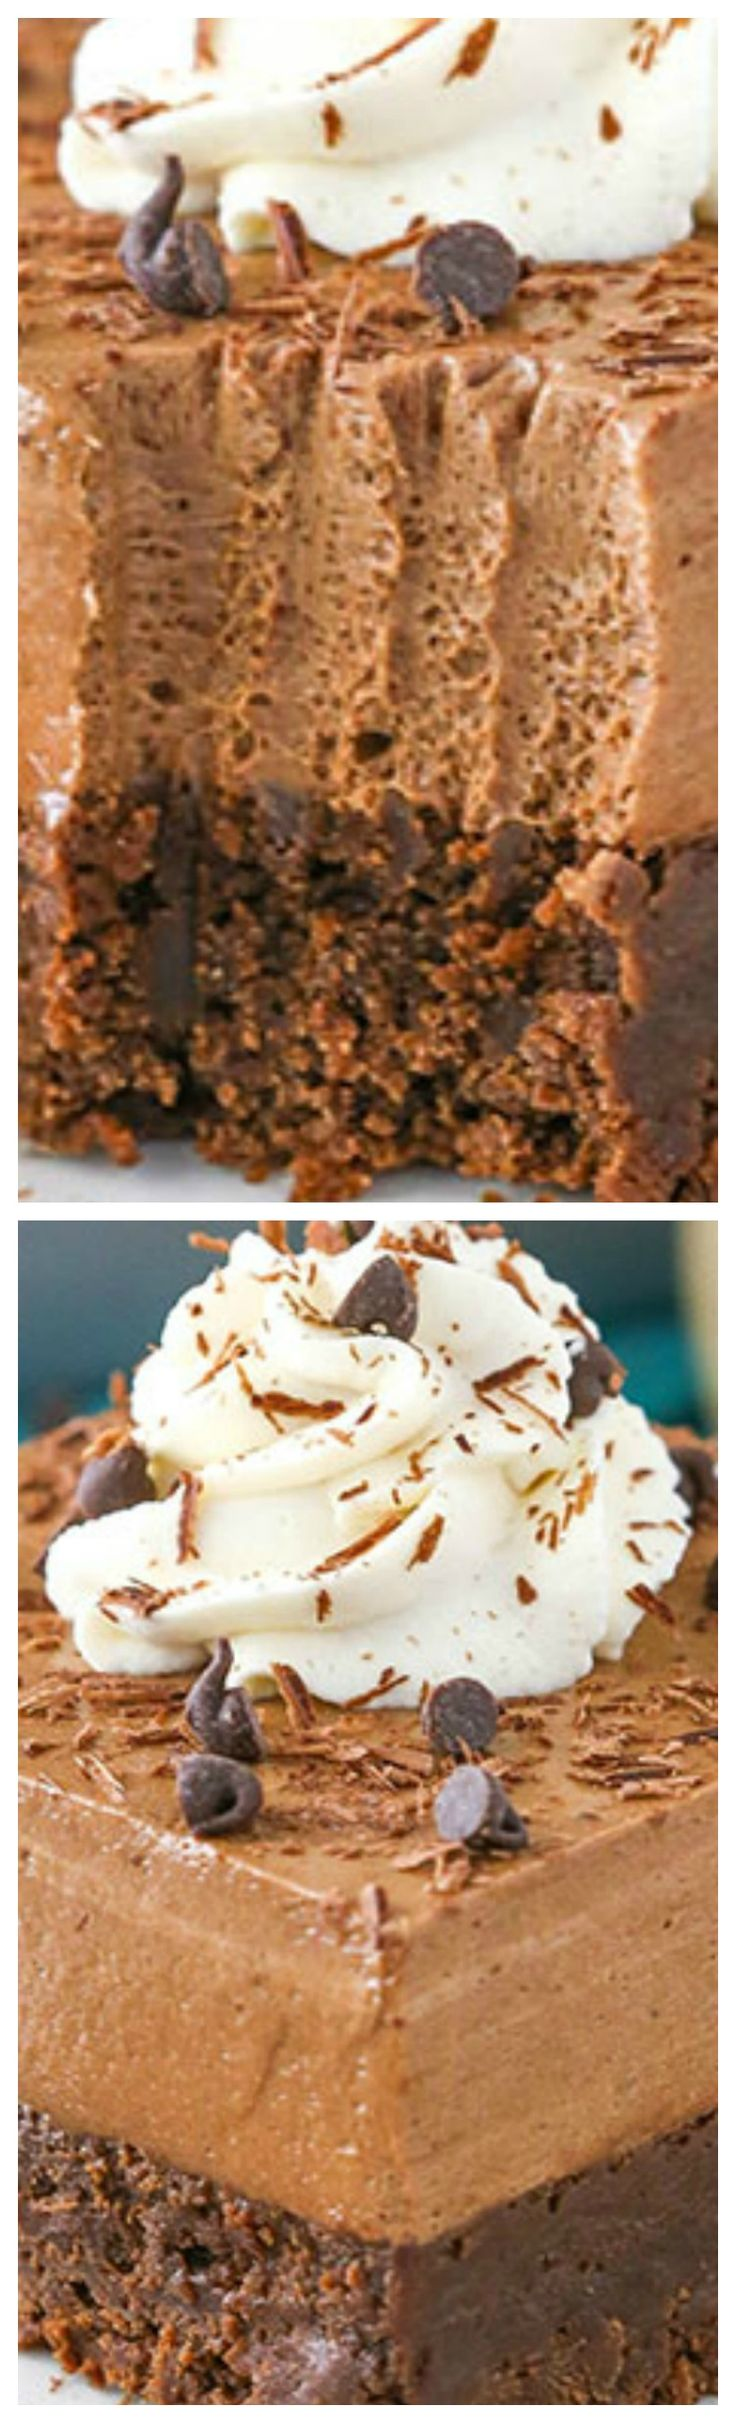 Baileys Chocolate Mousse Brownie Cake ~ With a dense, delicious brownie on the bottom and smooth Baileys chocolate mousse on top, you won't be able to stop eating it!